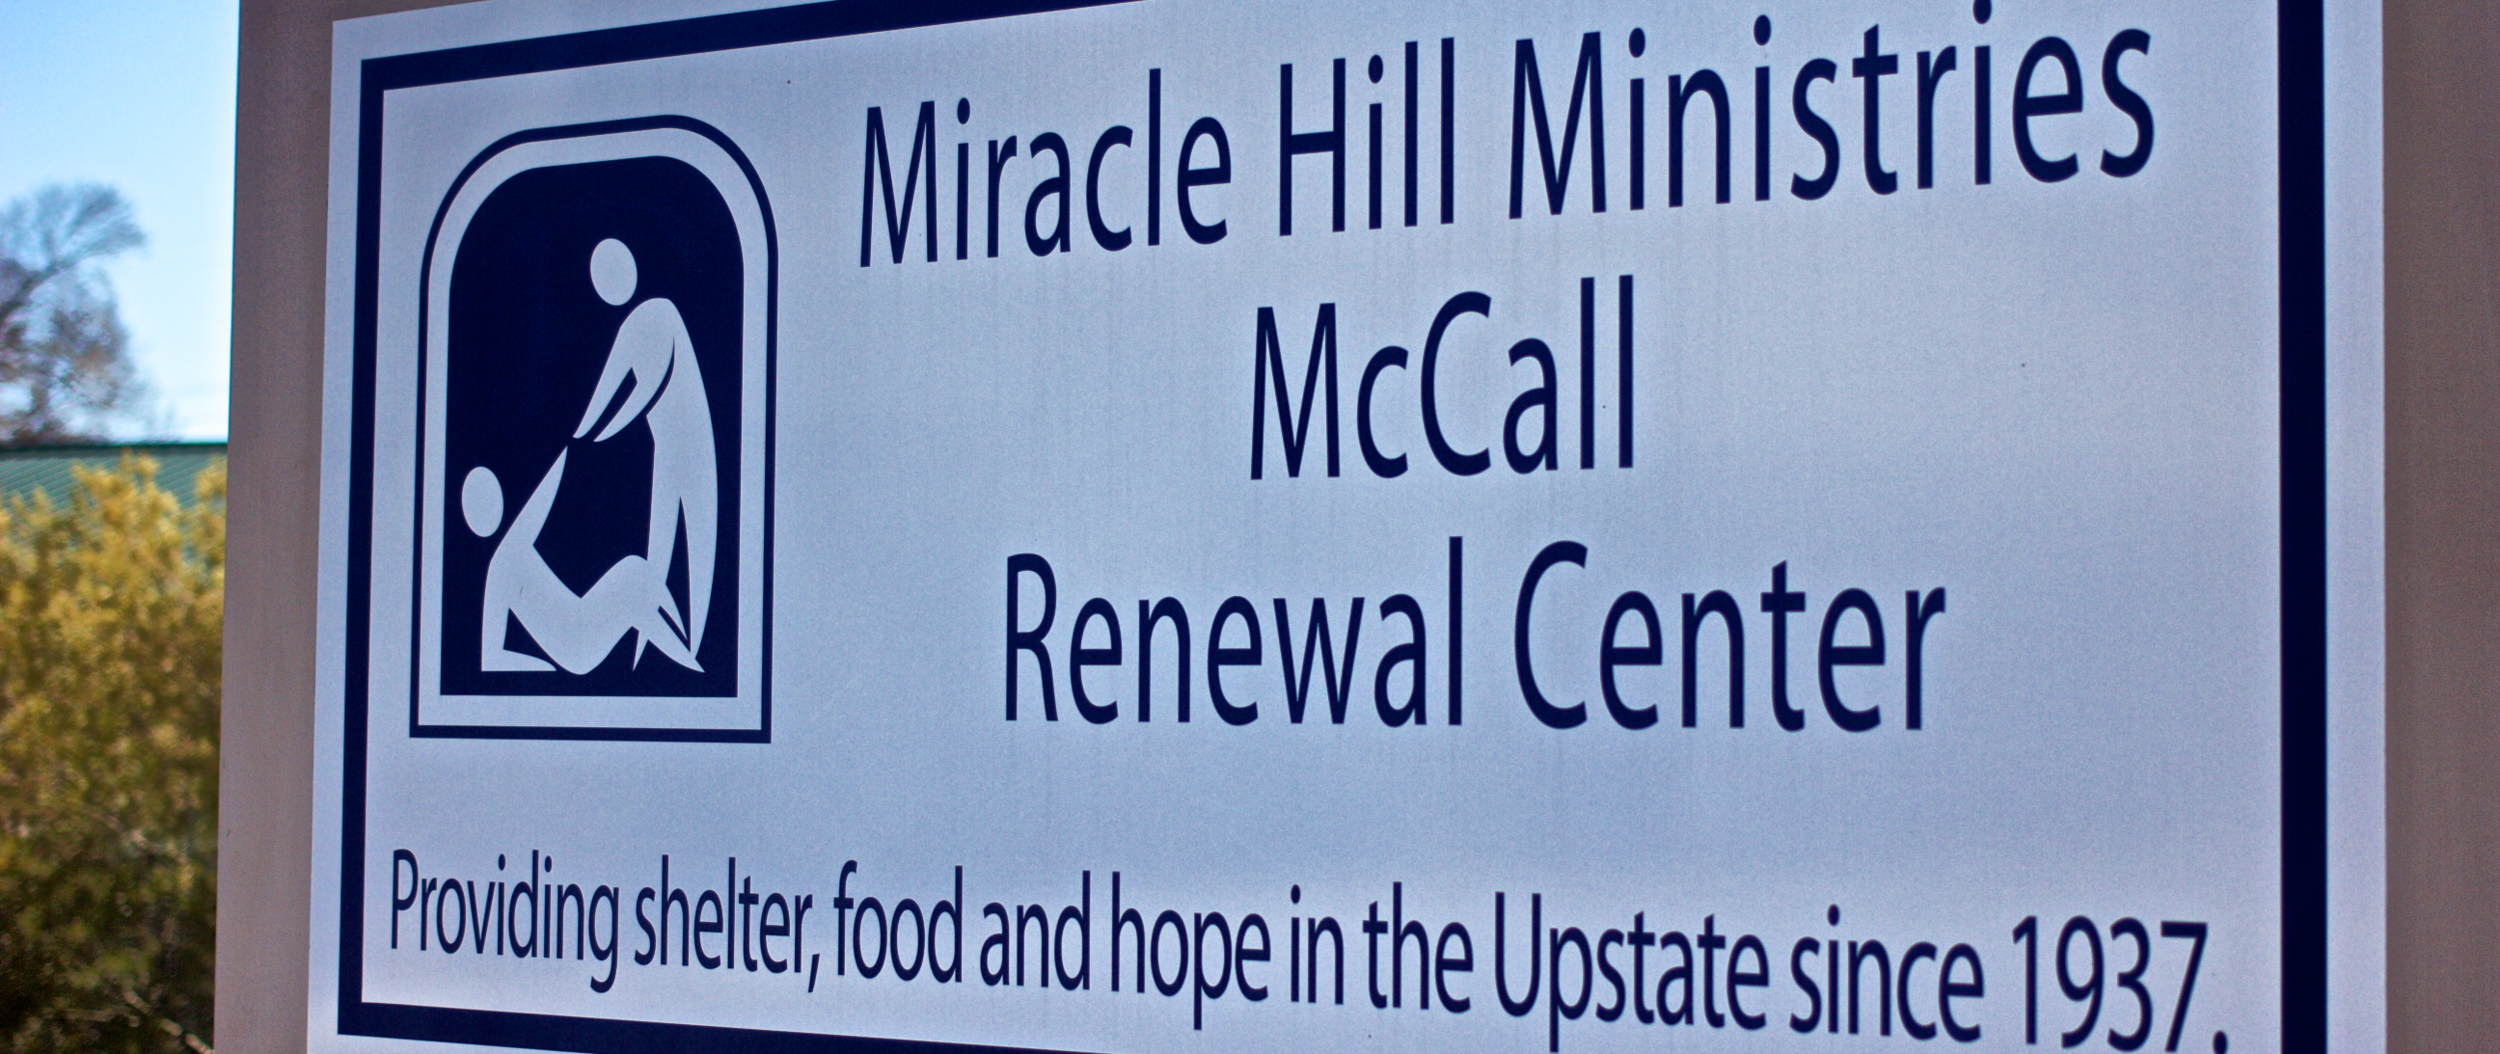 The Miracle Hill Renewal Center